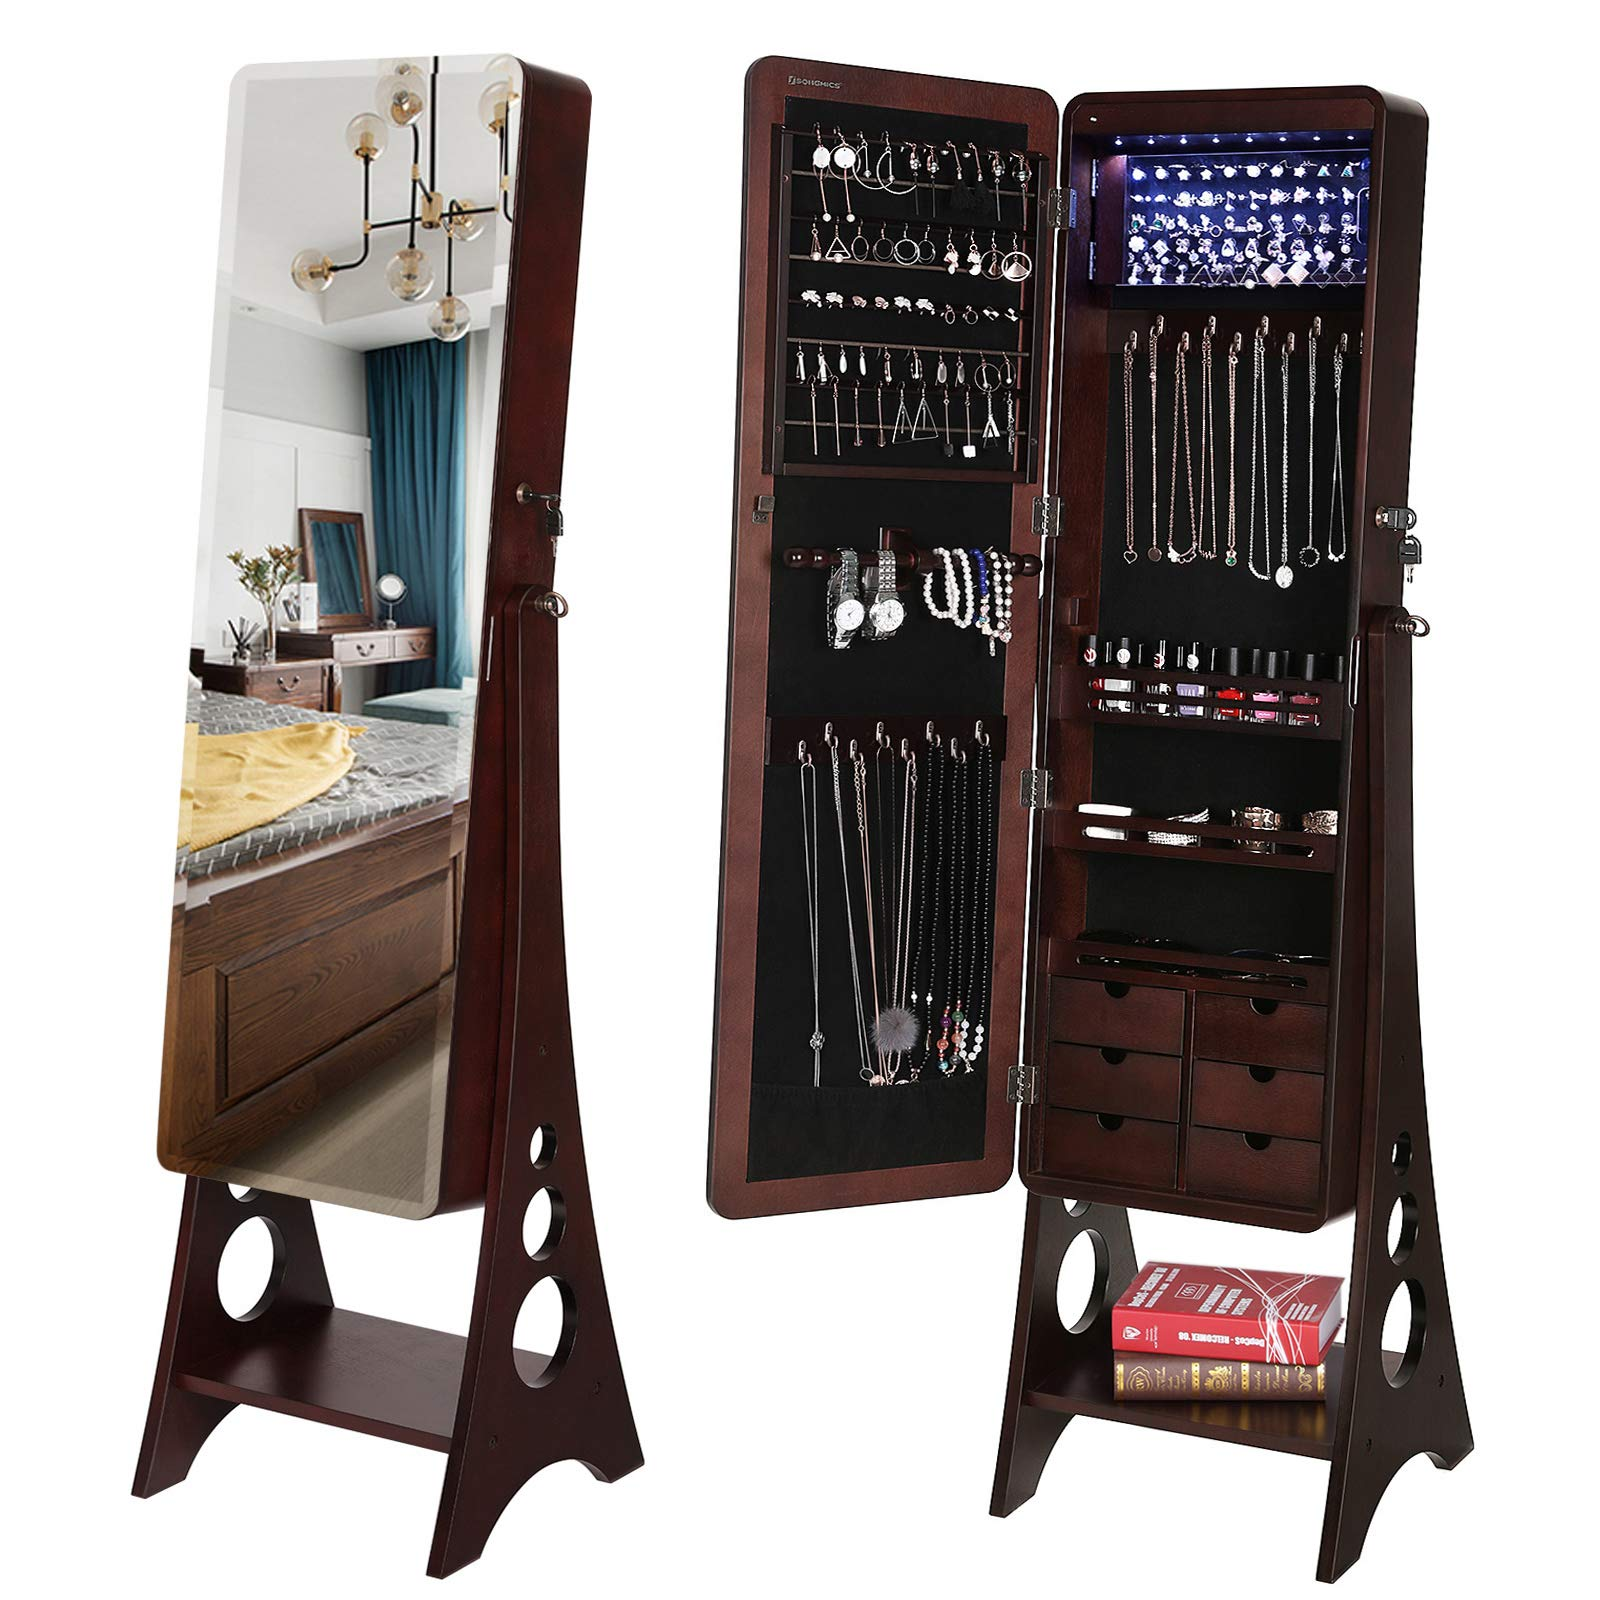 SONGMICS 8 LEDs Jewelry Cabinet Armoire with Beveled Edge Mirror, Gorgeous Jewelry Organizer Large Capacity Brown Patented UJJC89K by SONGMICS (Image #1)